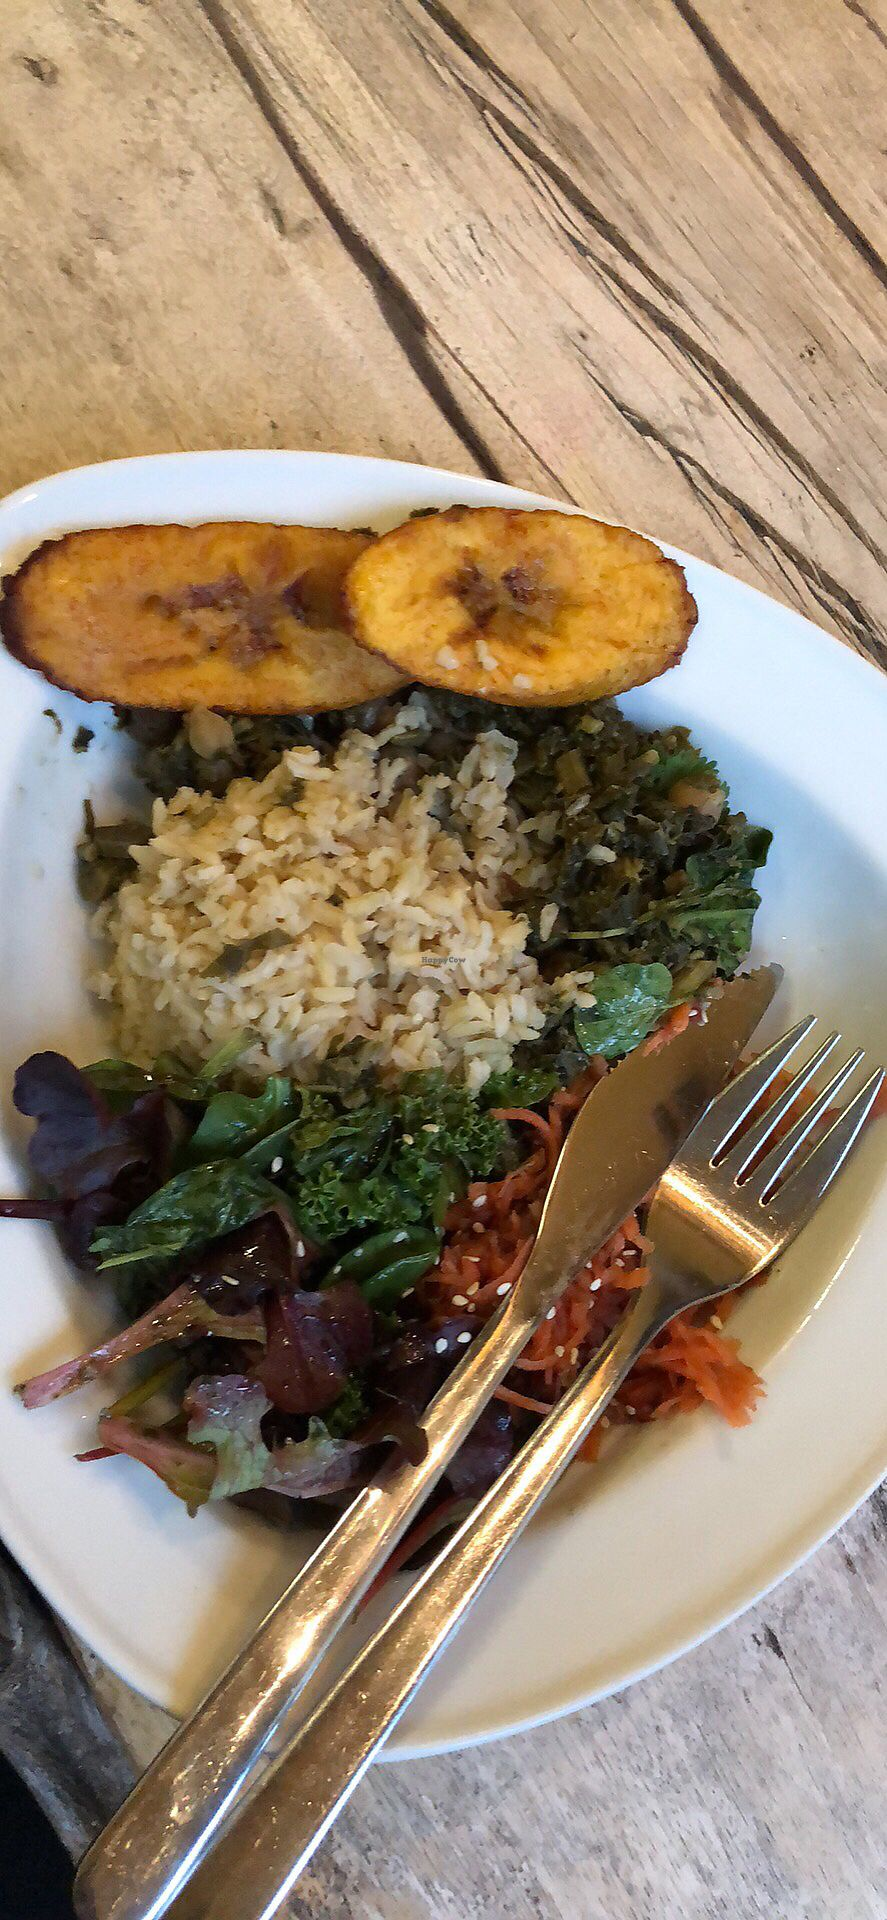 """Photo of CLOSED: The Calabash of Culture  by <a href=""""/members/profile/AtiyaDavids"""">AtiyaDavids</a> <br/>Spinach callaloo <br/> January 10, 2018  - <a href='/contact/abuse/image/48450/345087'>Report</a>"""